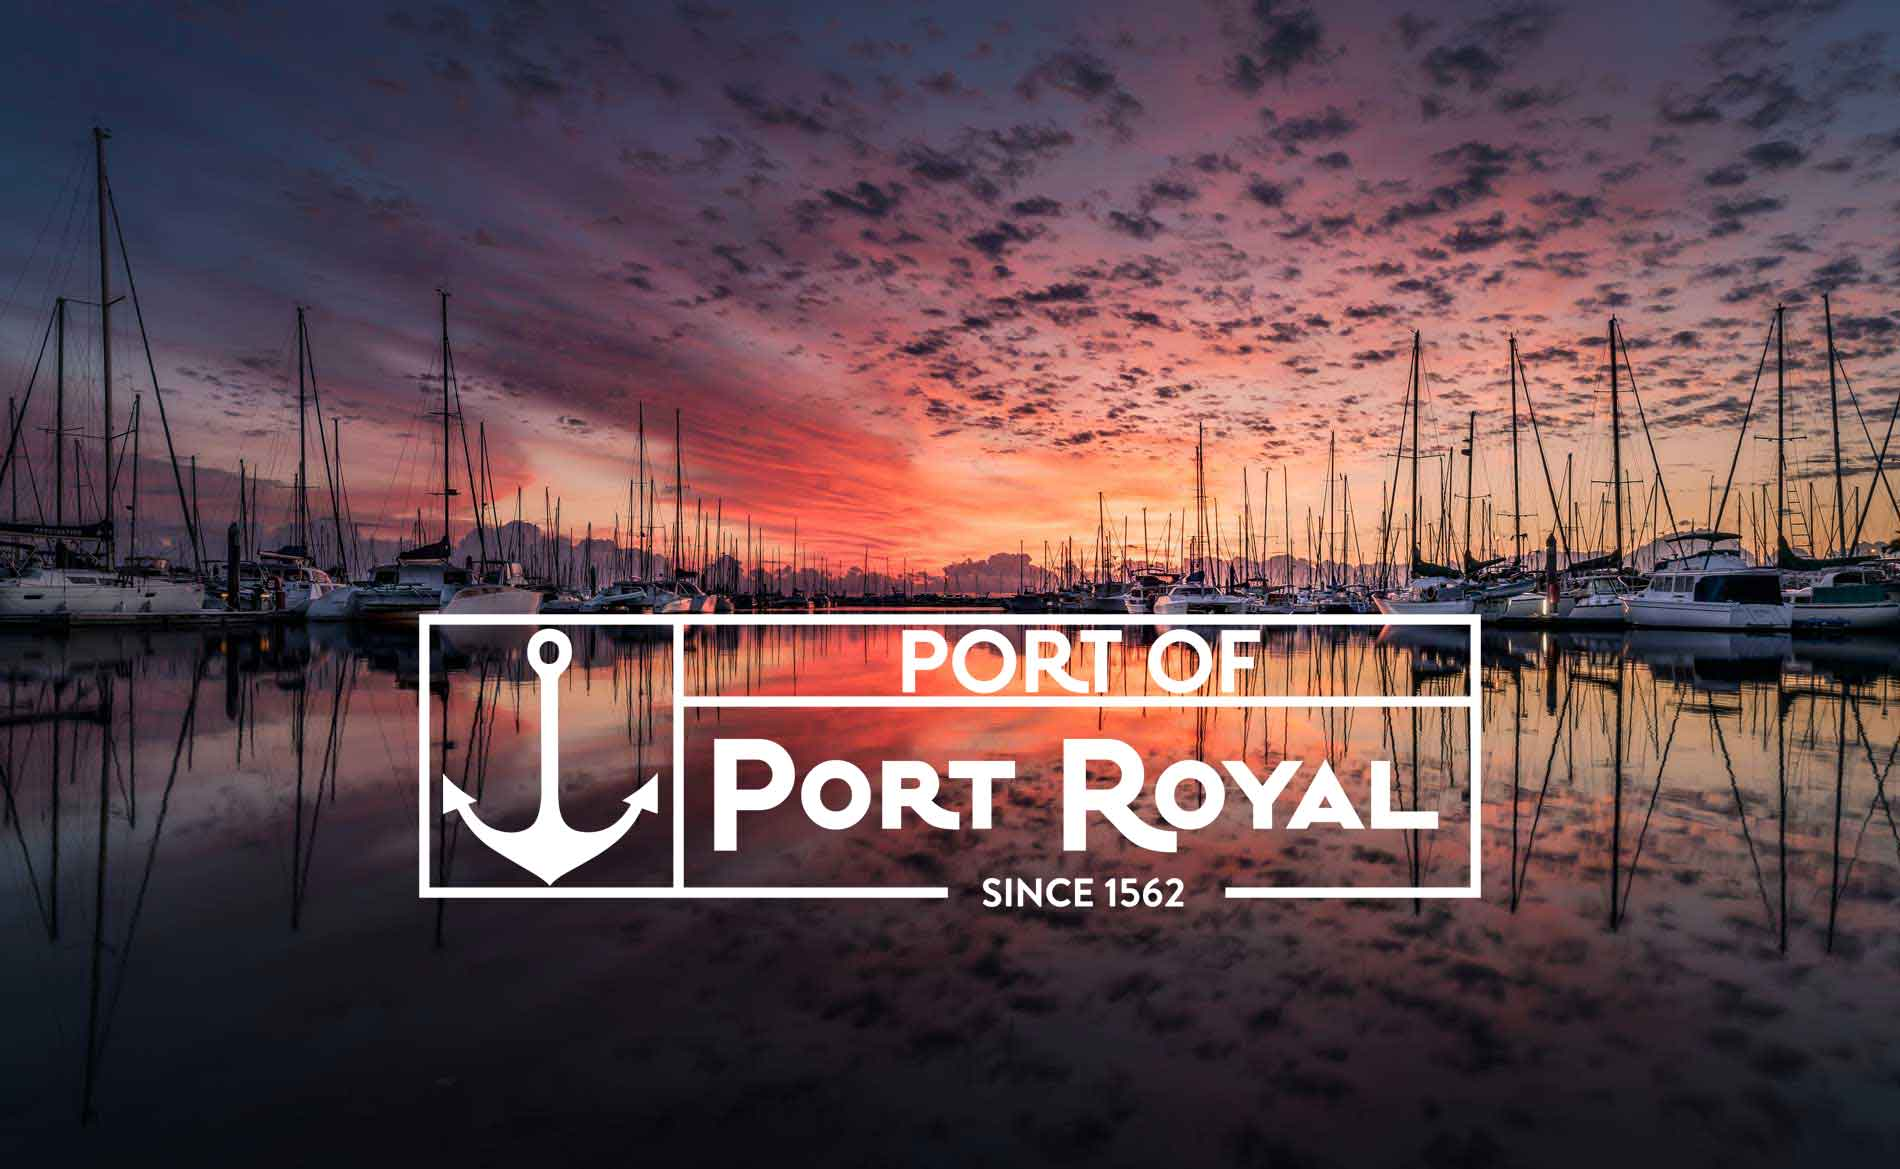 Port of Port Royal, SC